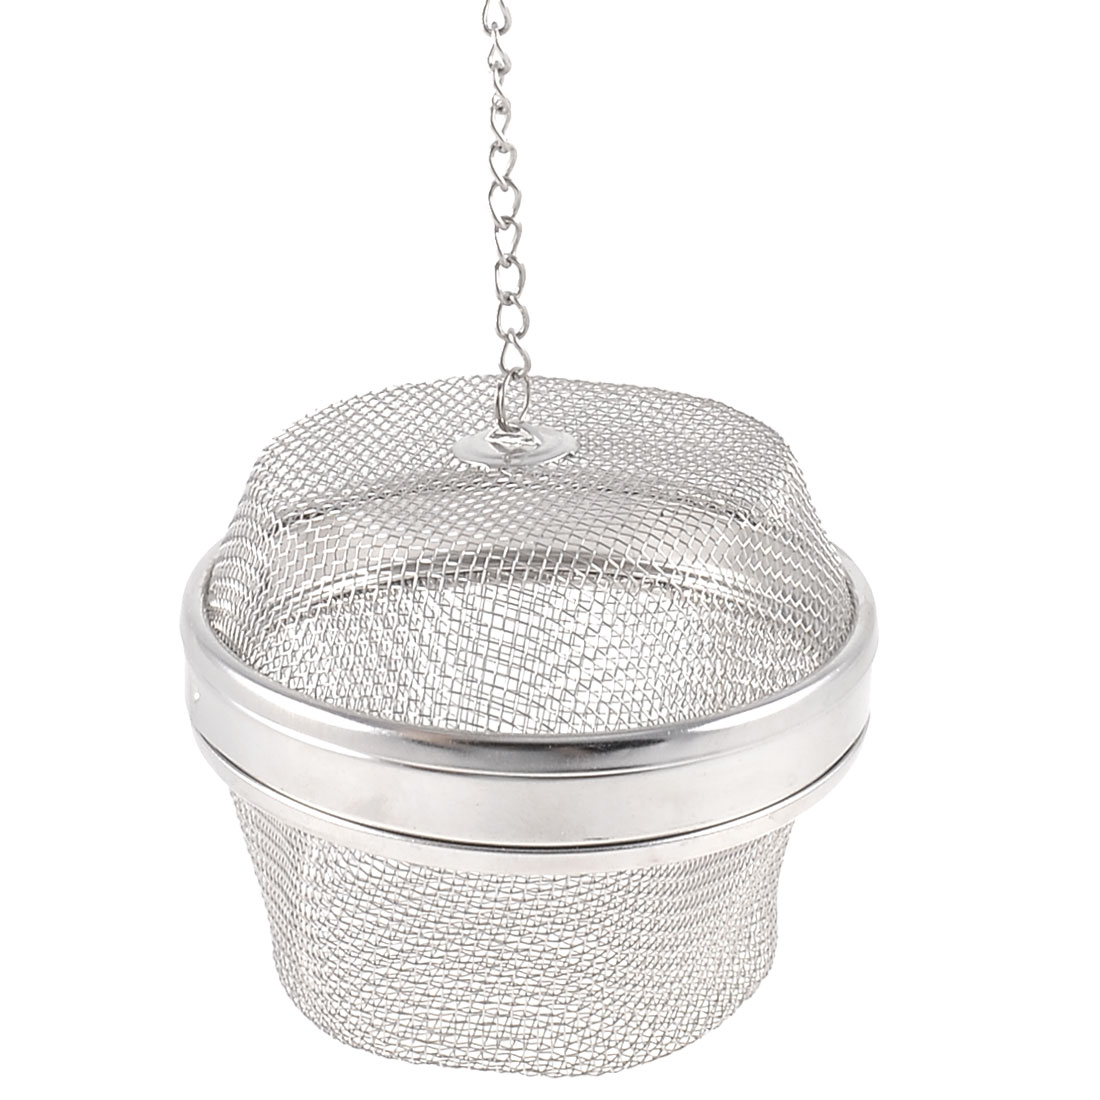 "Home 3.5"" Diameter Locking Mesh Sphere Ball Spice Tea Strainer Infuser"